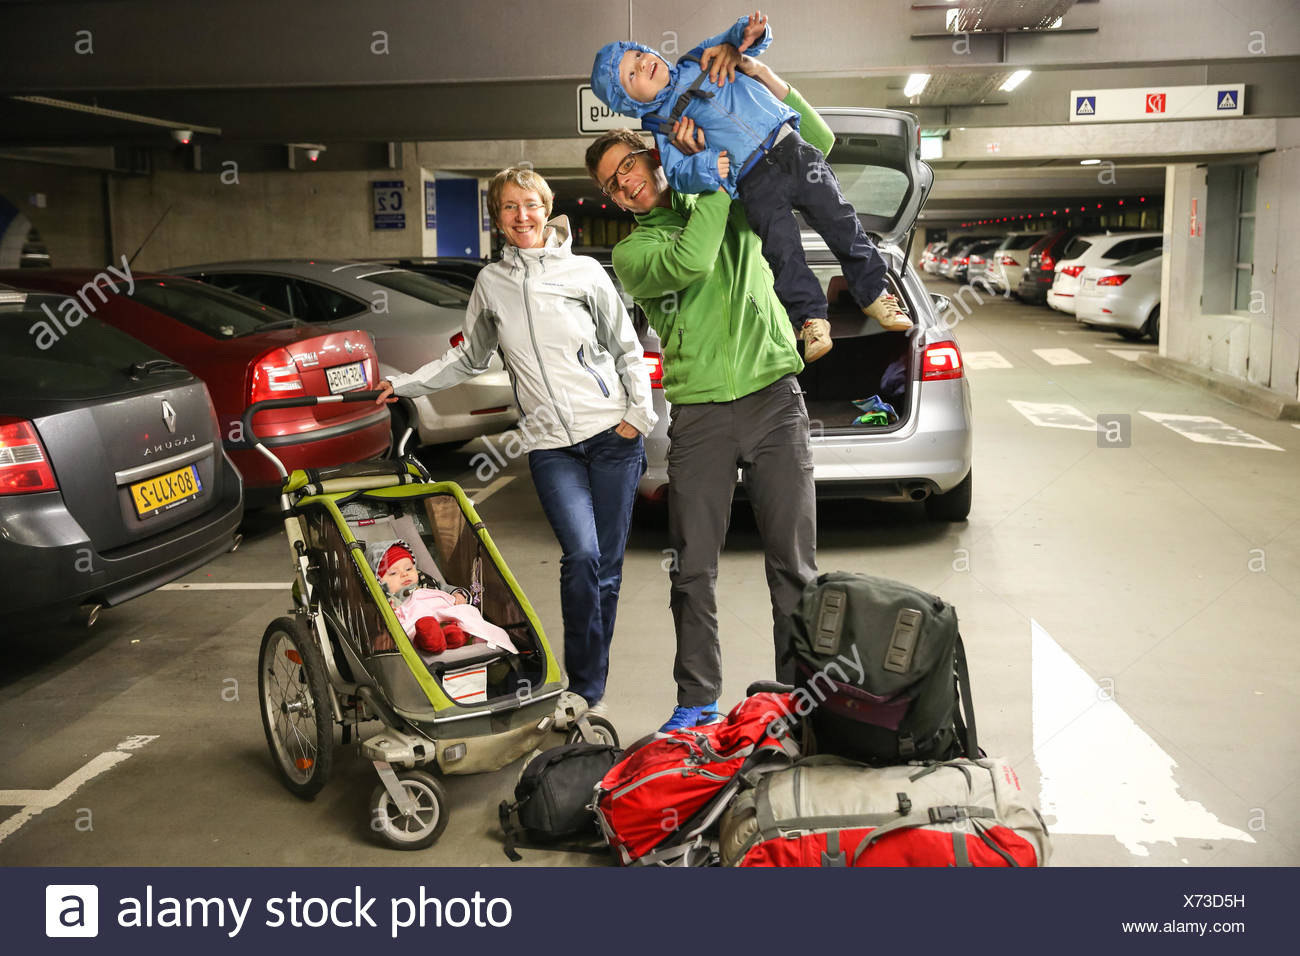 Young family with children, departure at airport, car parking area, baby, small boy, luggage, stroller, backpack, parental leave - Stock Image